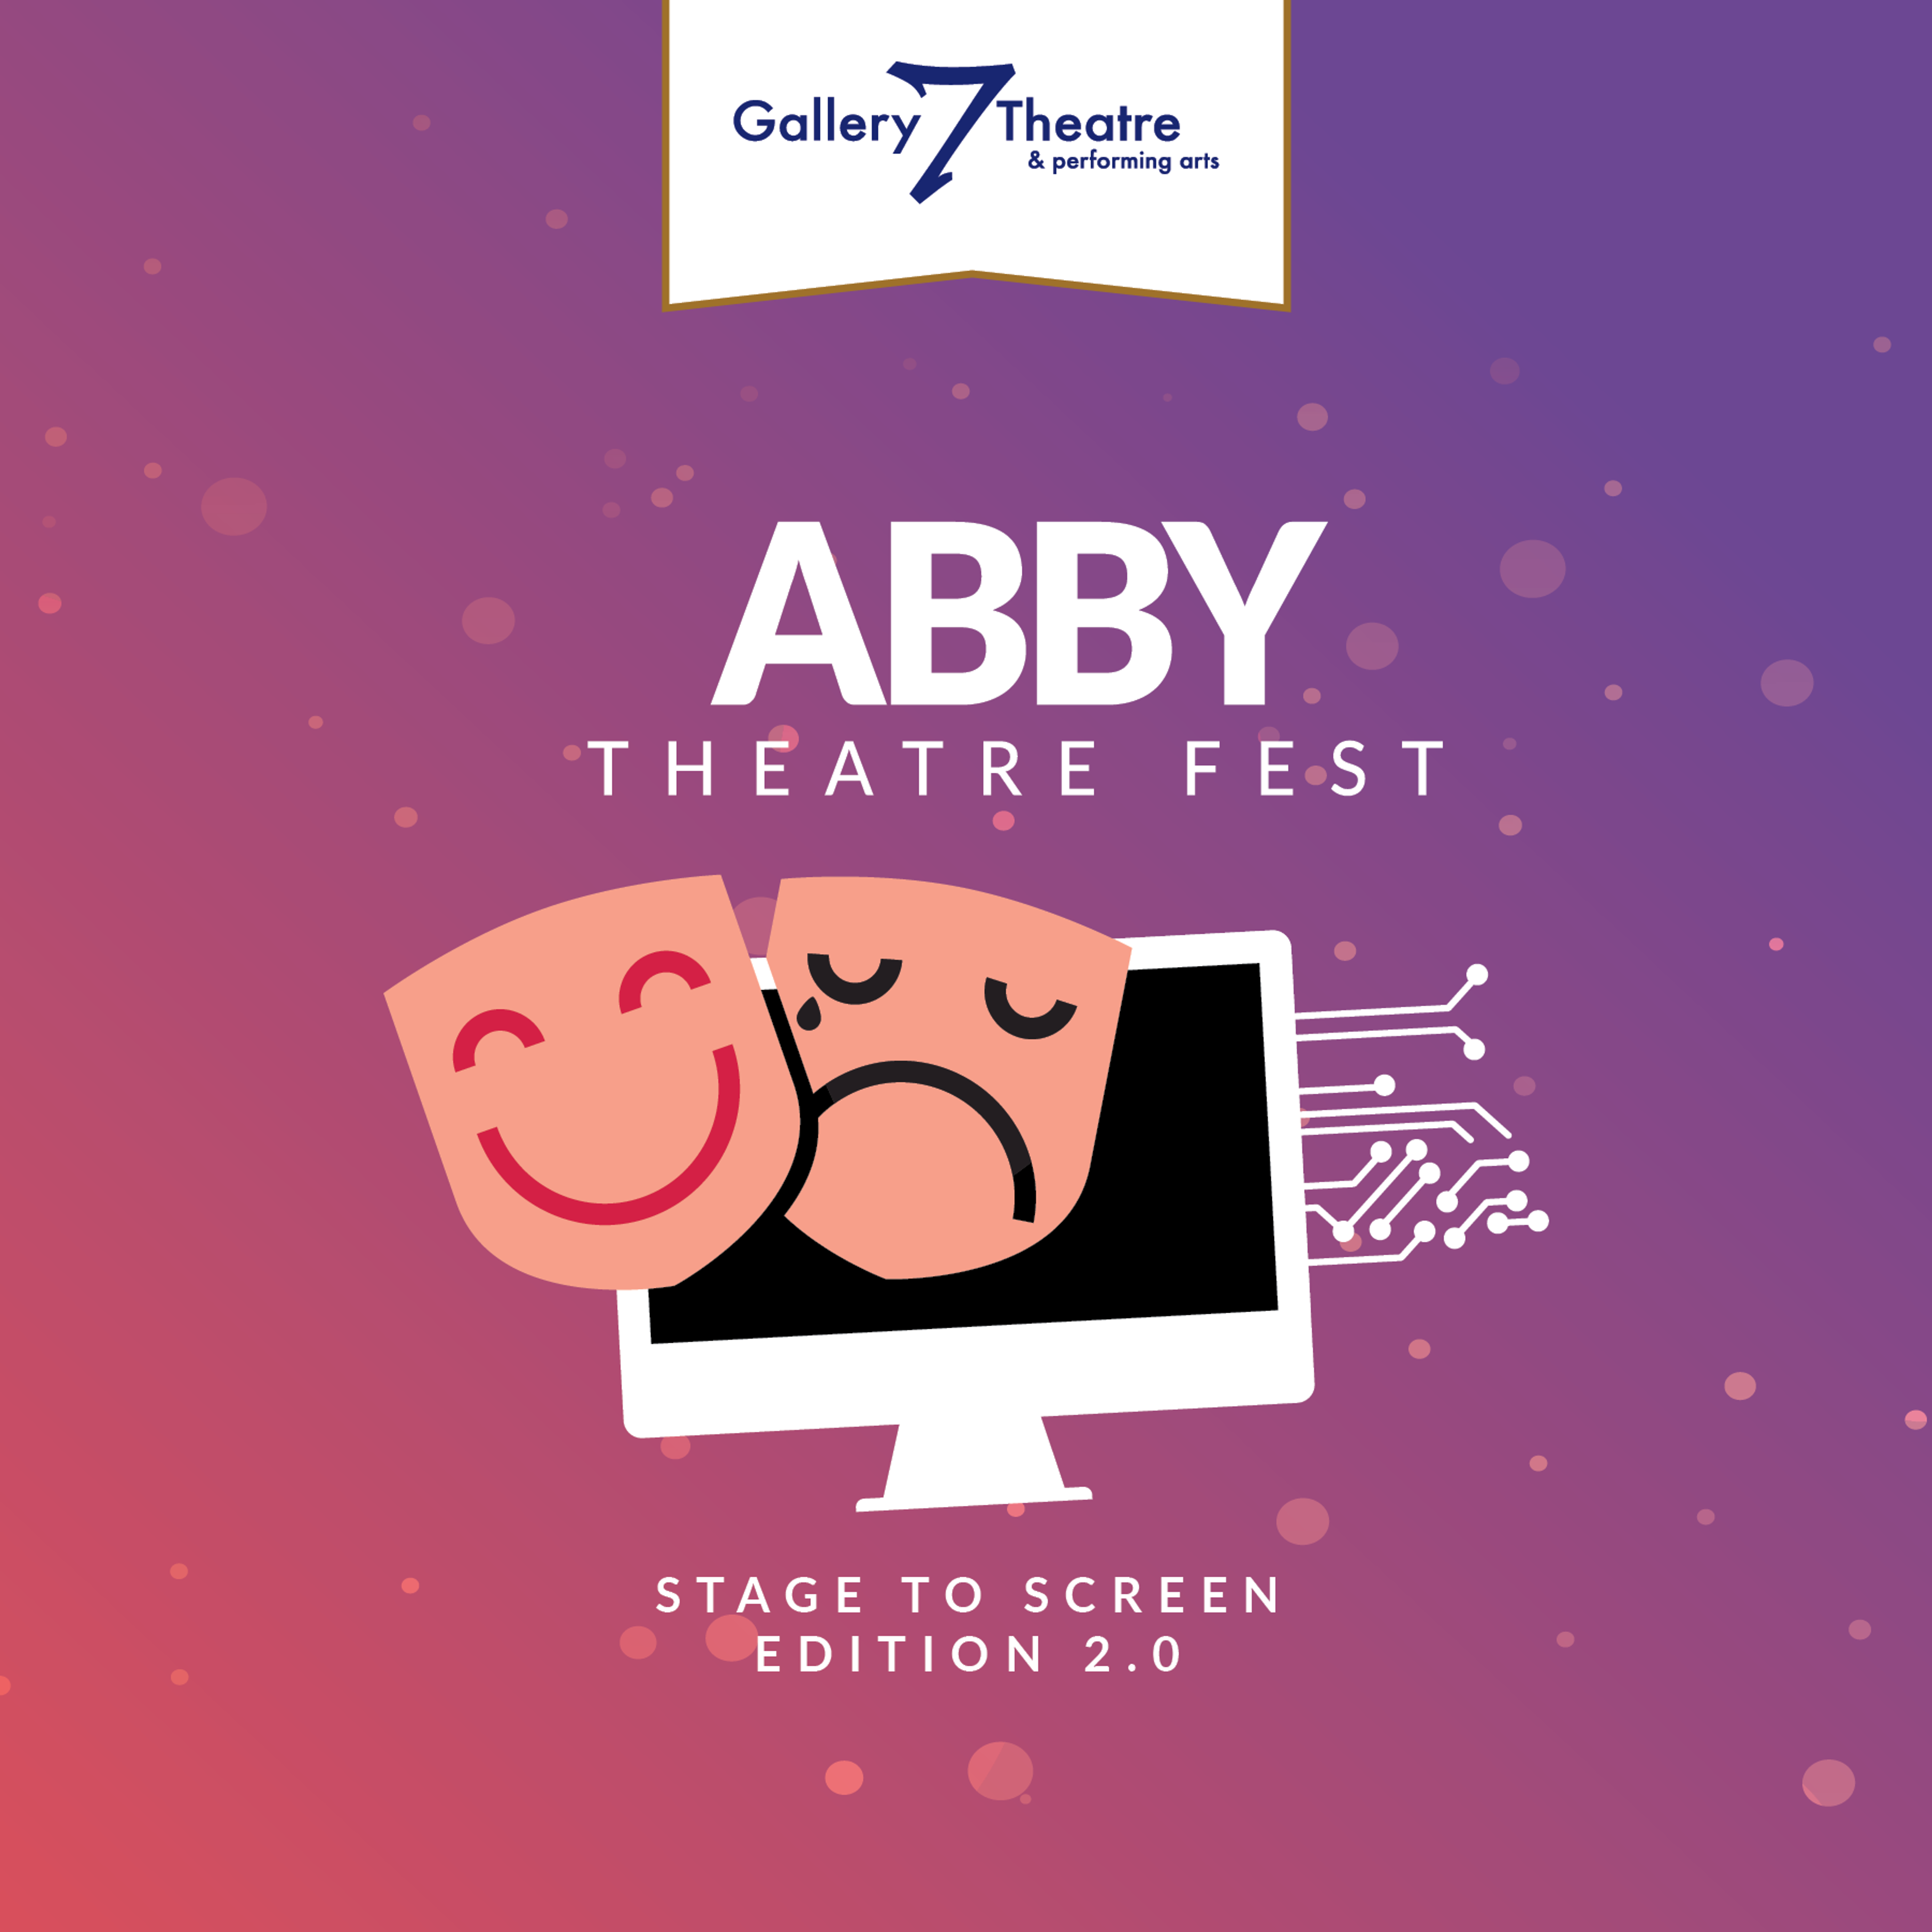 Abby Theatre Fest Stage to Screen Edition 2.0